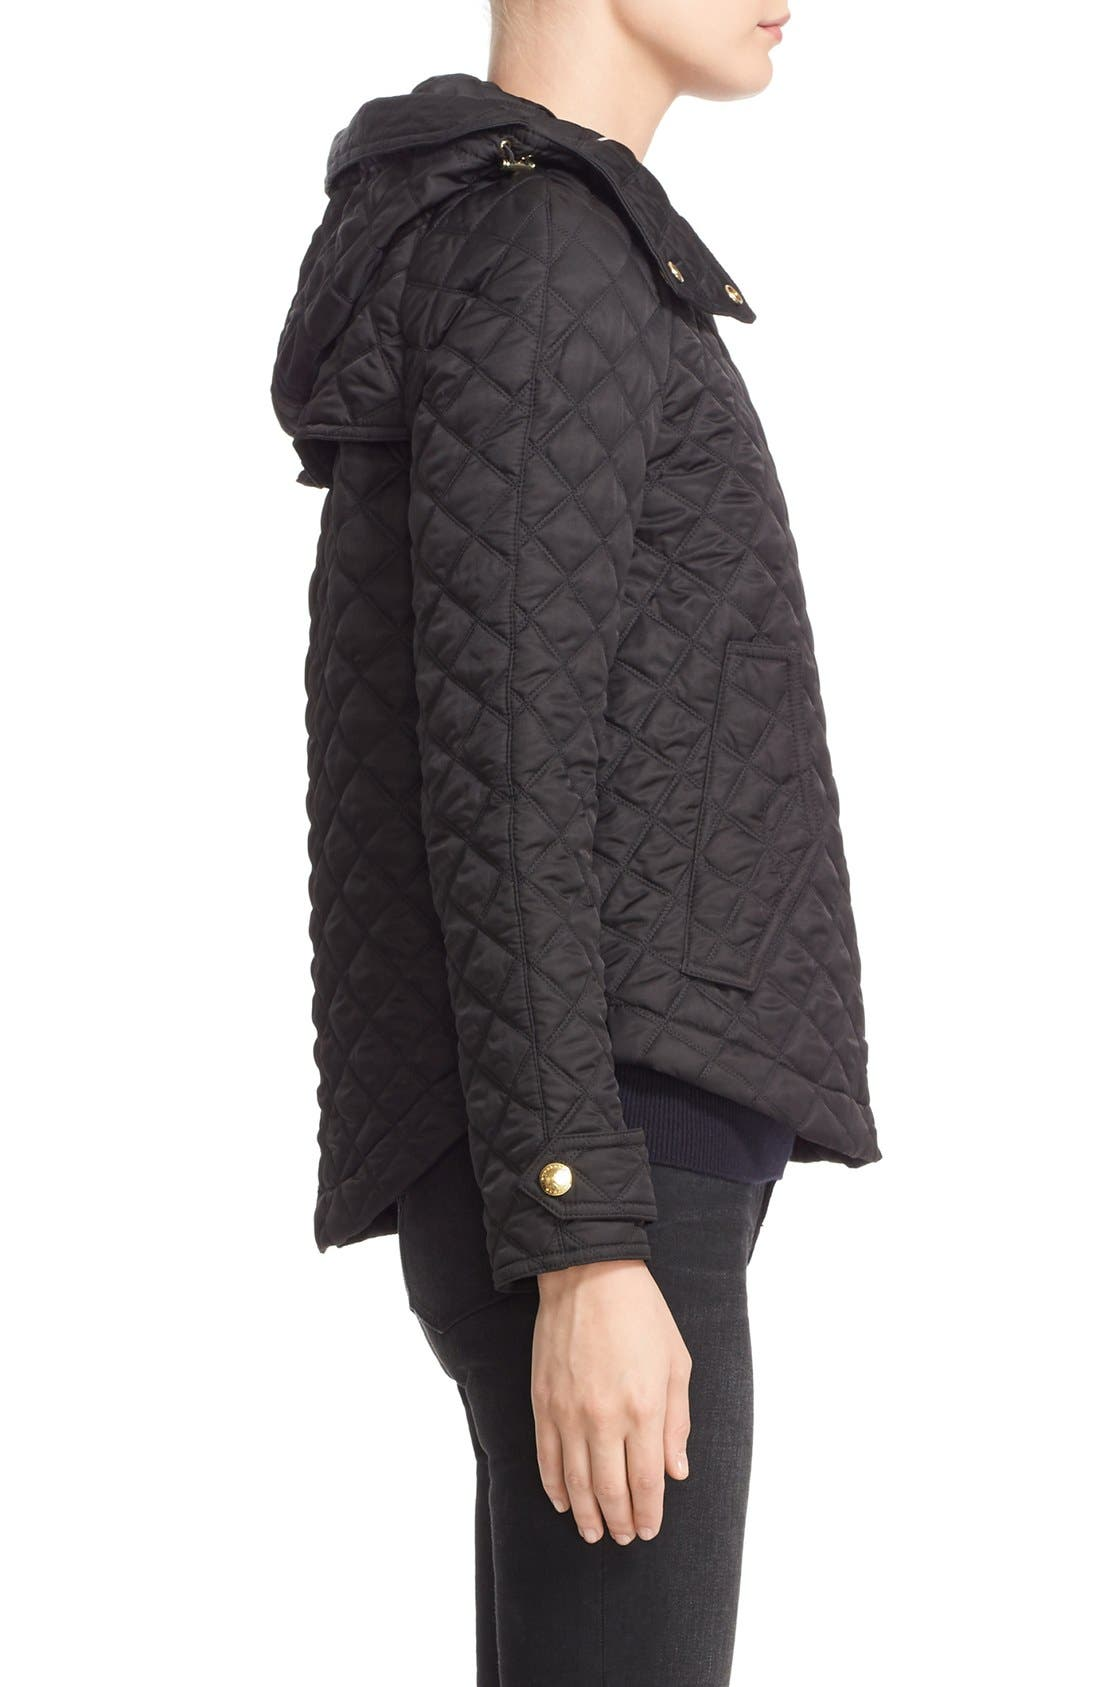 'Leightonbury' Quilted Hooded Jacket,                             Alternate thumbnail 6, color,                             001